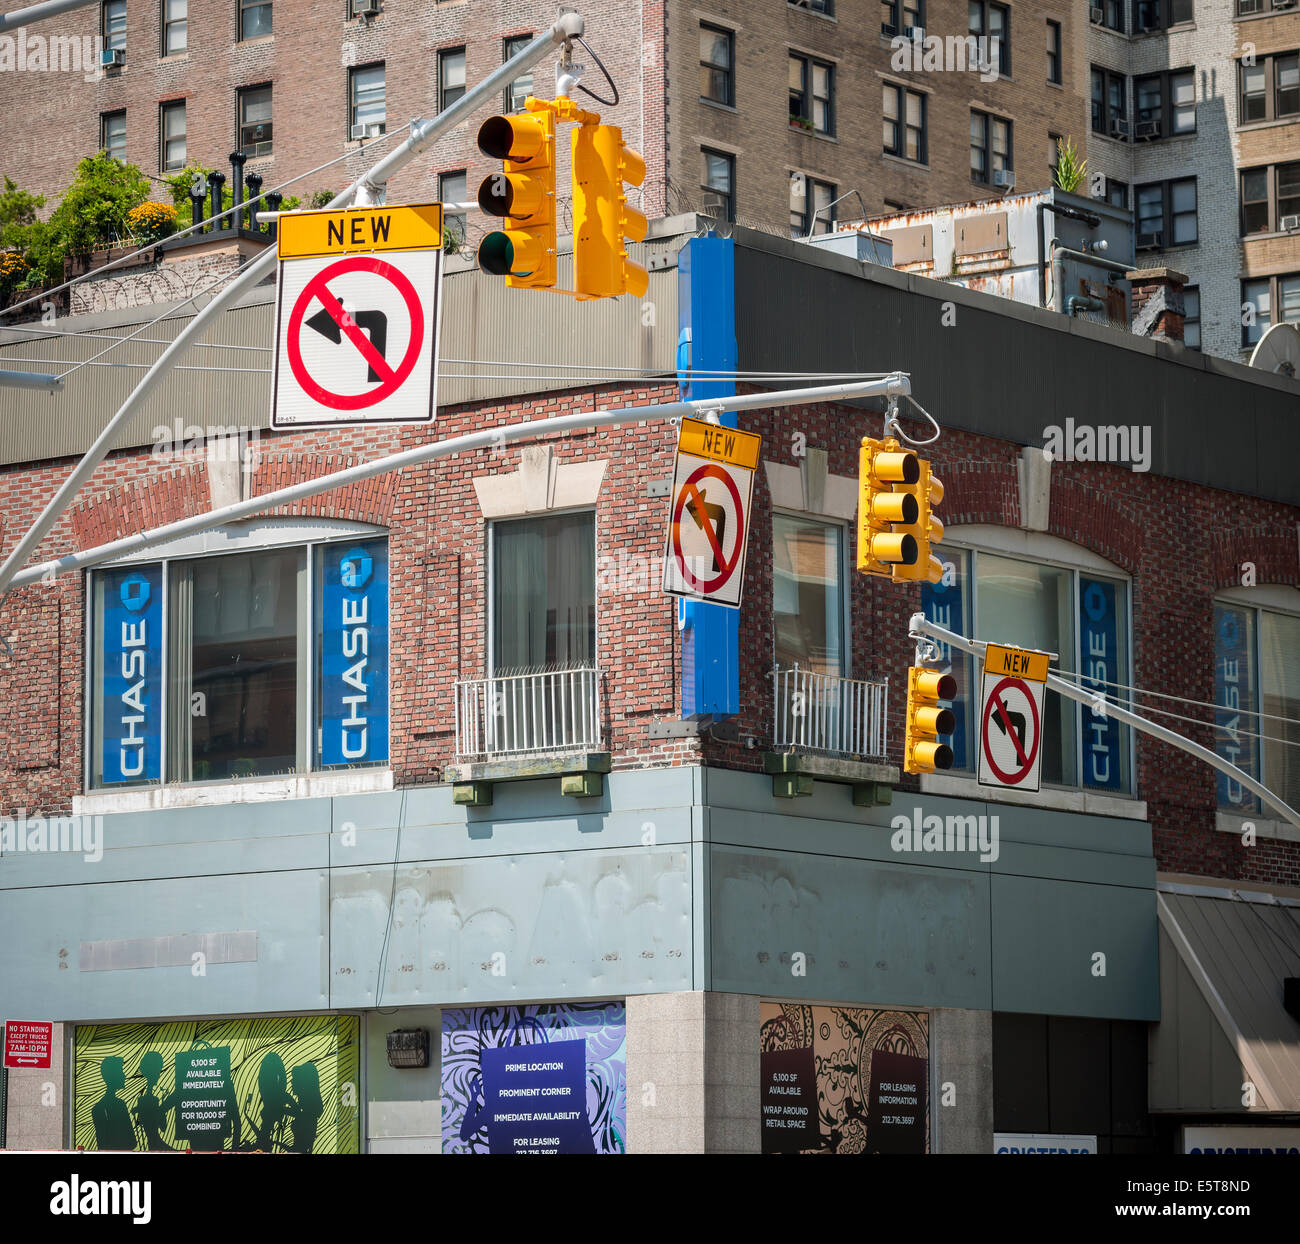 New traffic restrictions at Broadway and West 96th Street in New York - Stock Image